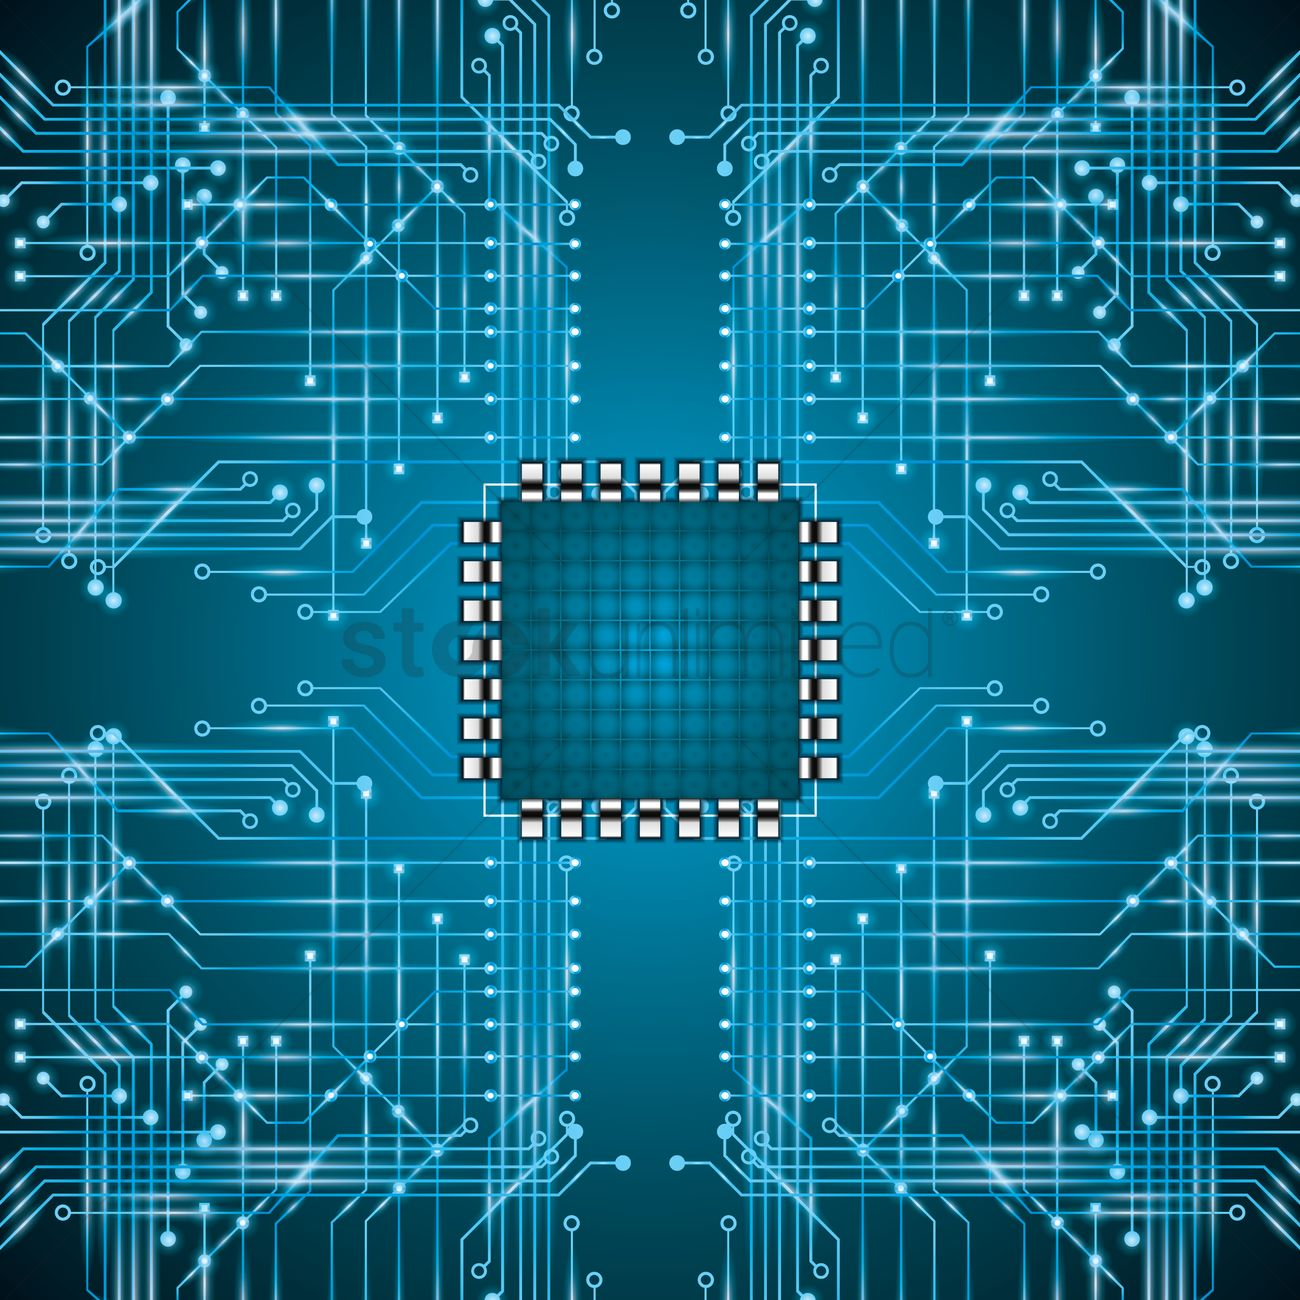 microchip on circuit board wallpaper vector image 1807540microchip on circuit board wallpaper vector graphic